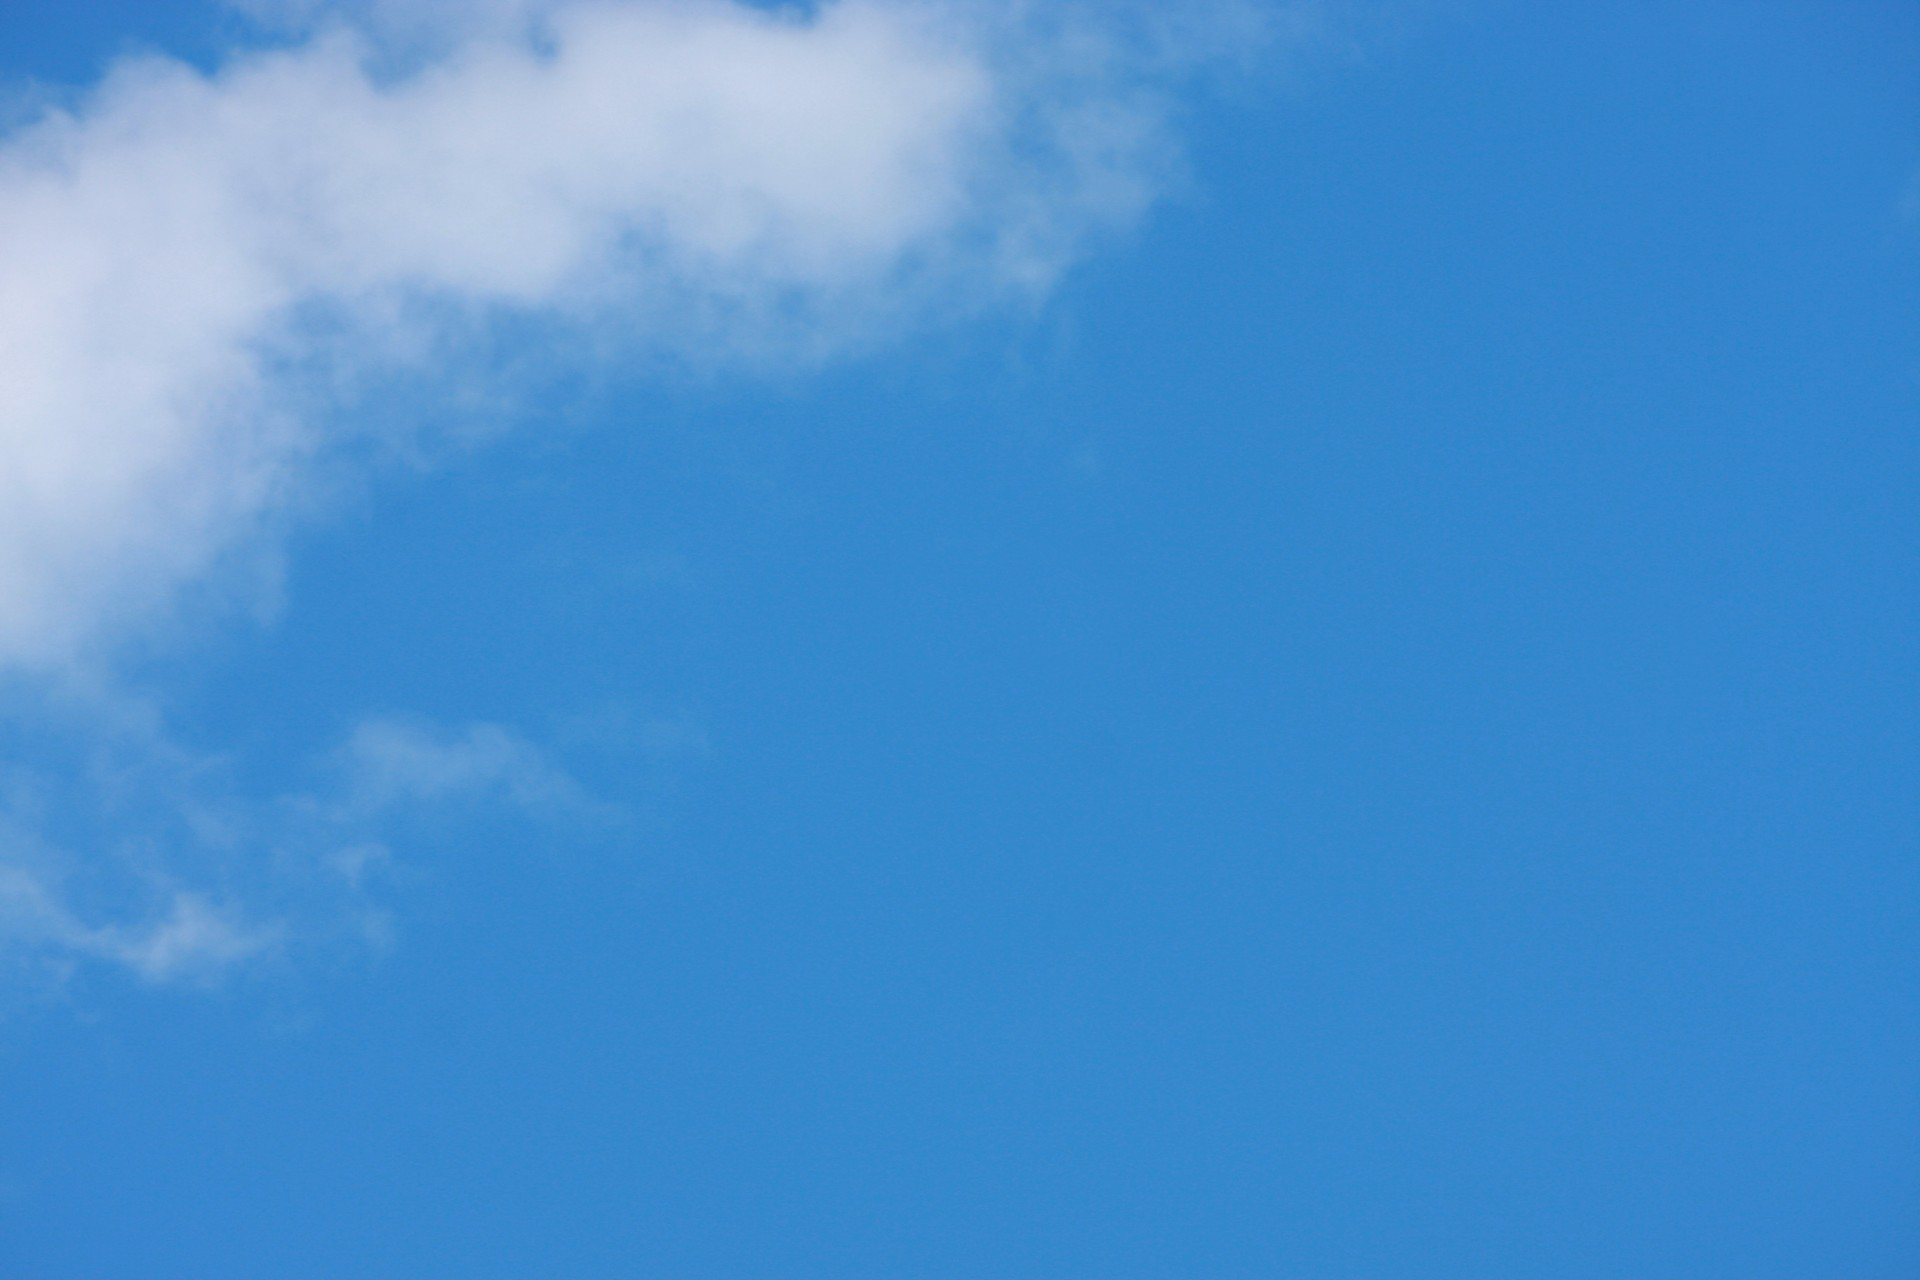 Blue Sky Background Wallpaper Free Stock Photo - Public Domain Pictures